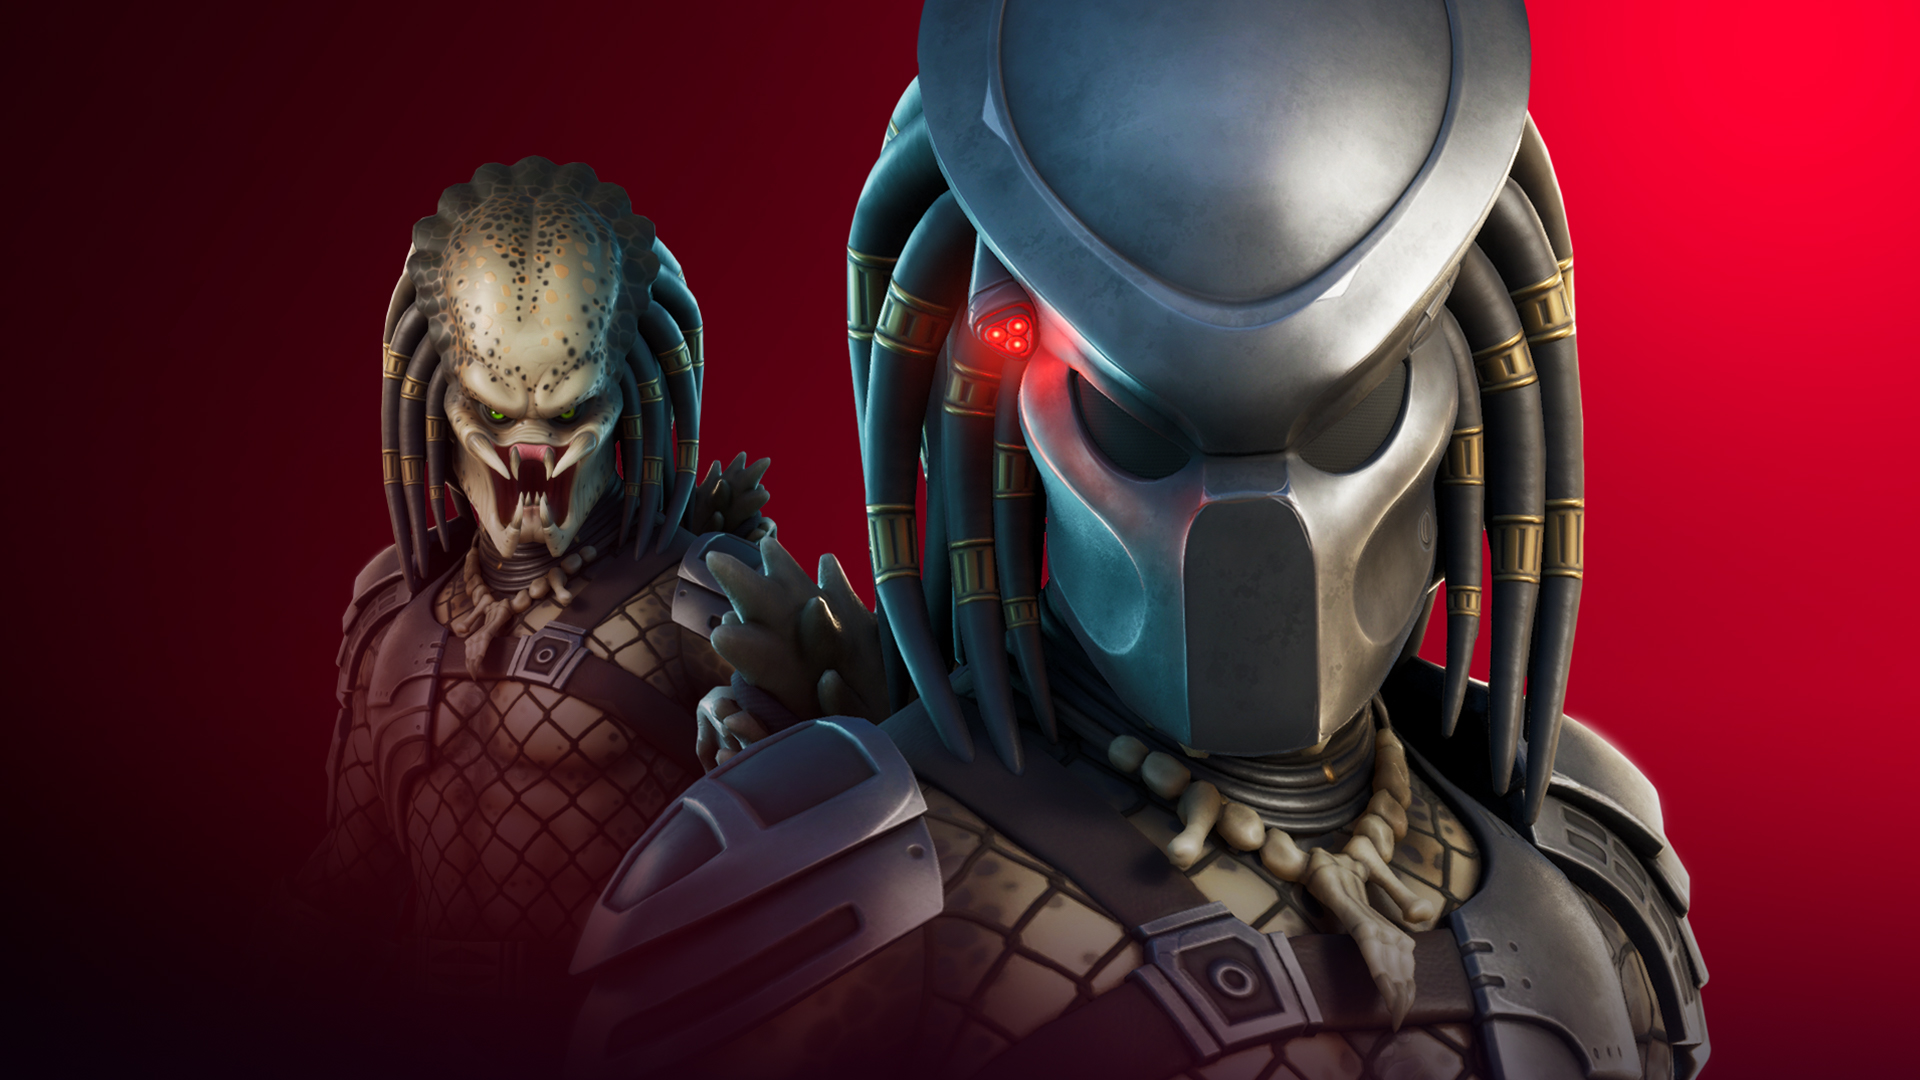 Artwork of The Predator (with mask and without) from Fortnite